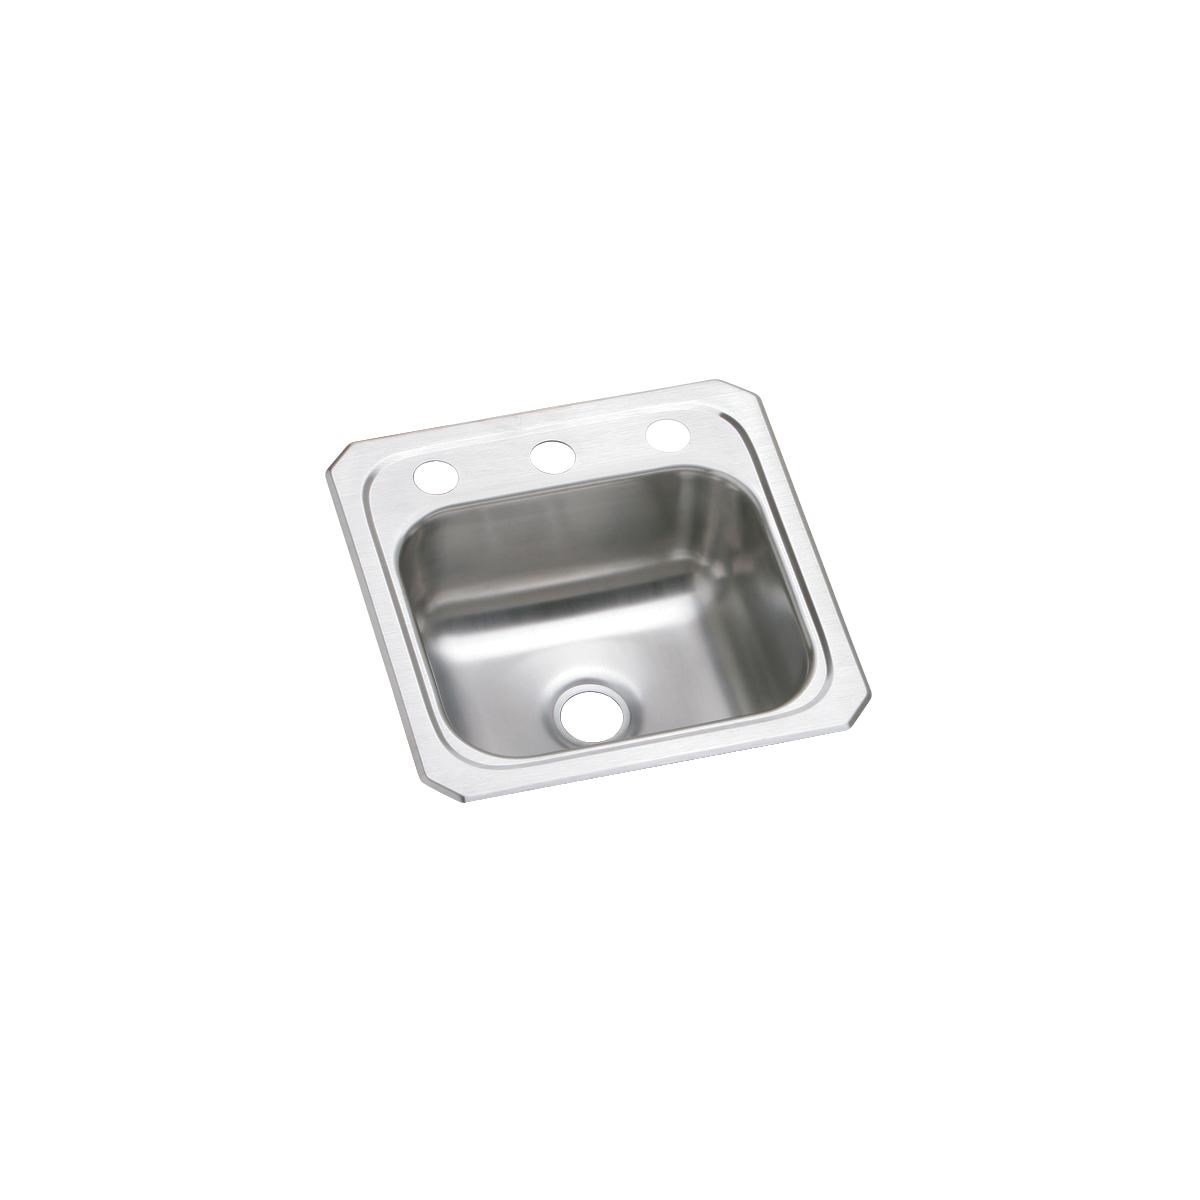 Elkay Mfg Co 15 X 15 X 6 Three Hole 20 Gauge Elkay Celebrity Hospitality Stainless Steel Bar Sink Without Faucet Ledge